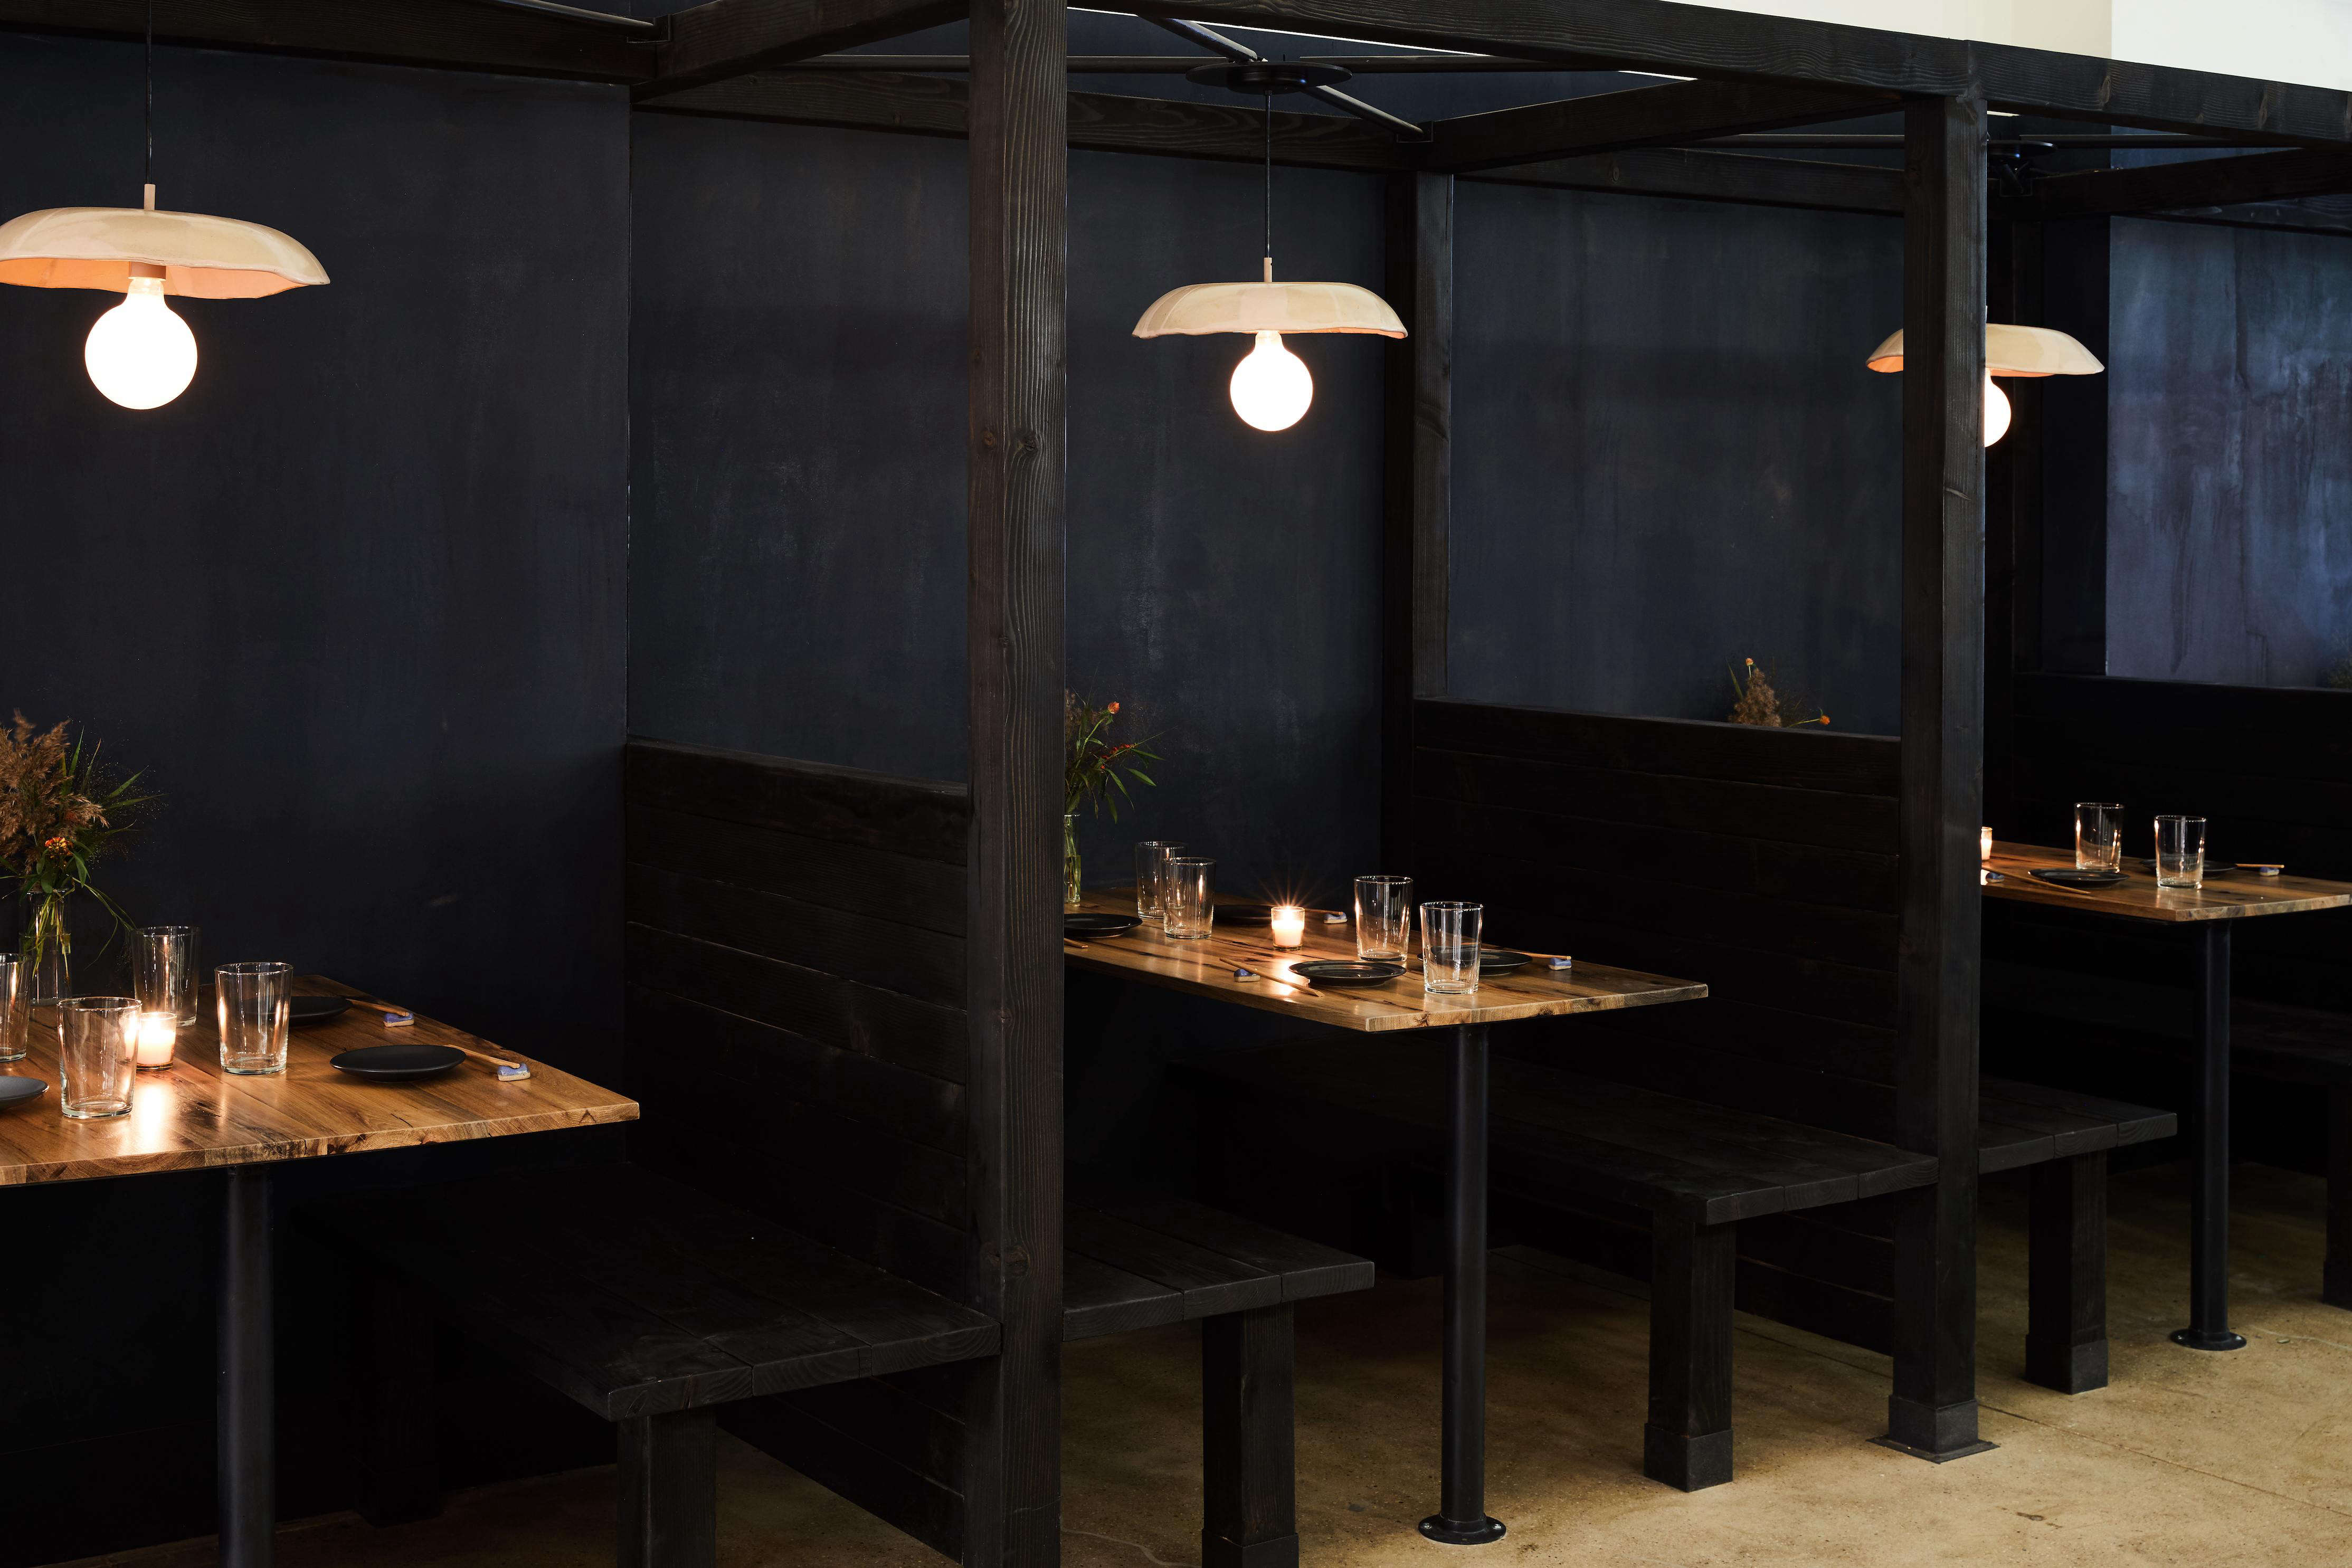 9 Design Ideas For Small Dark Rooms From Tonchin New York